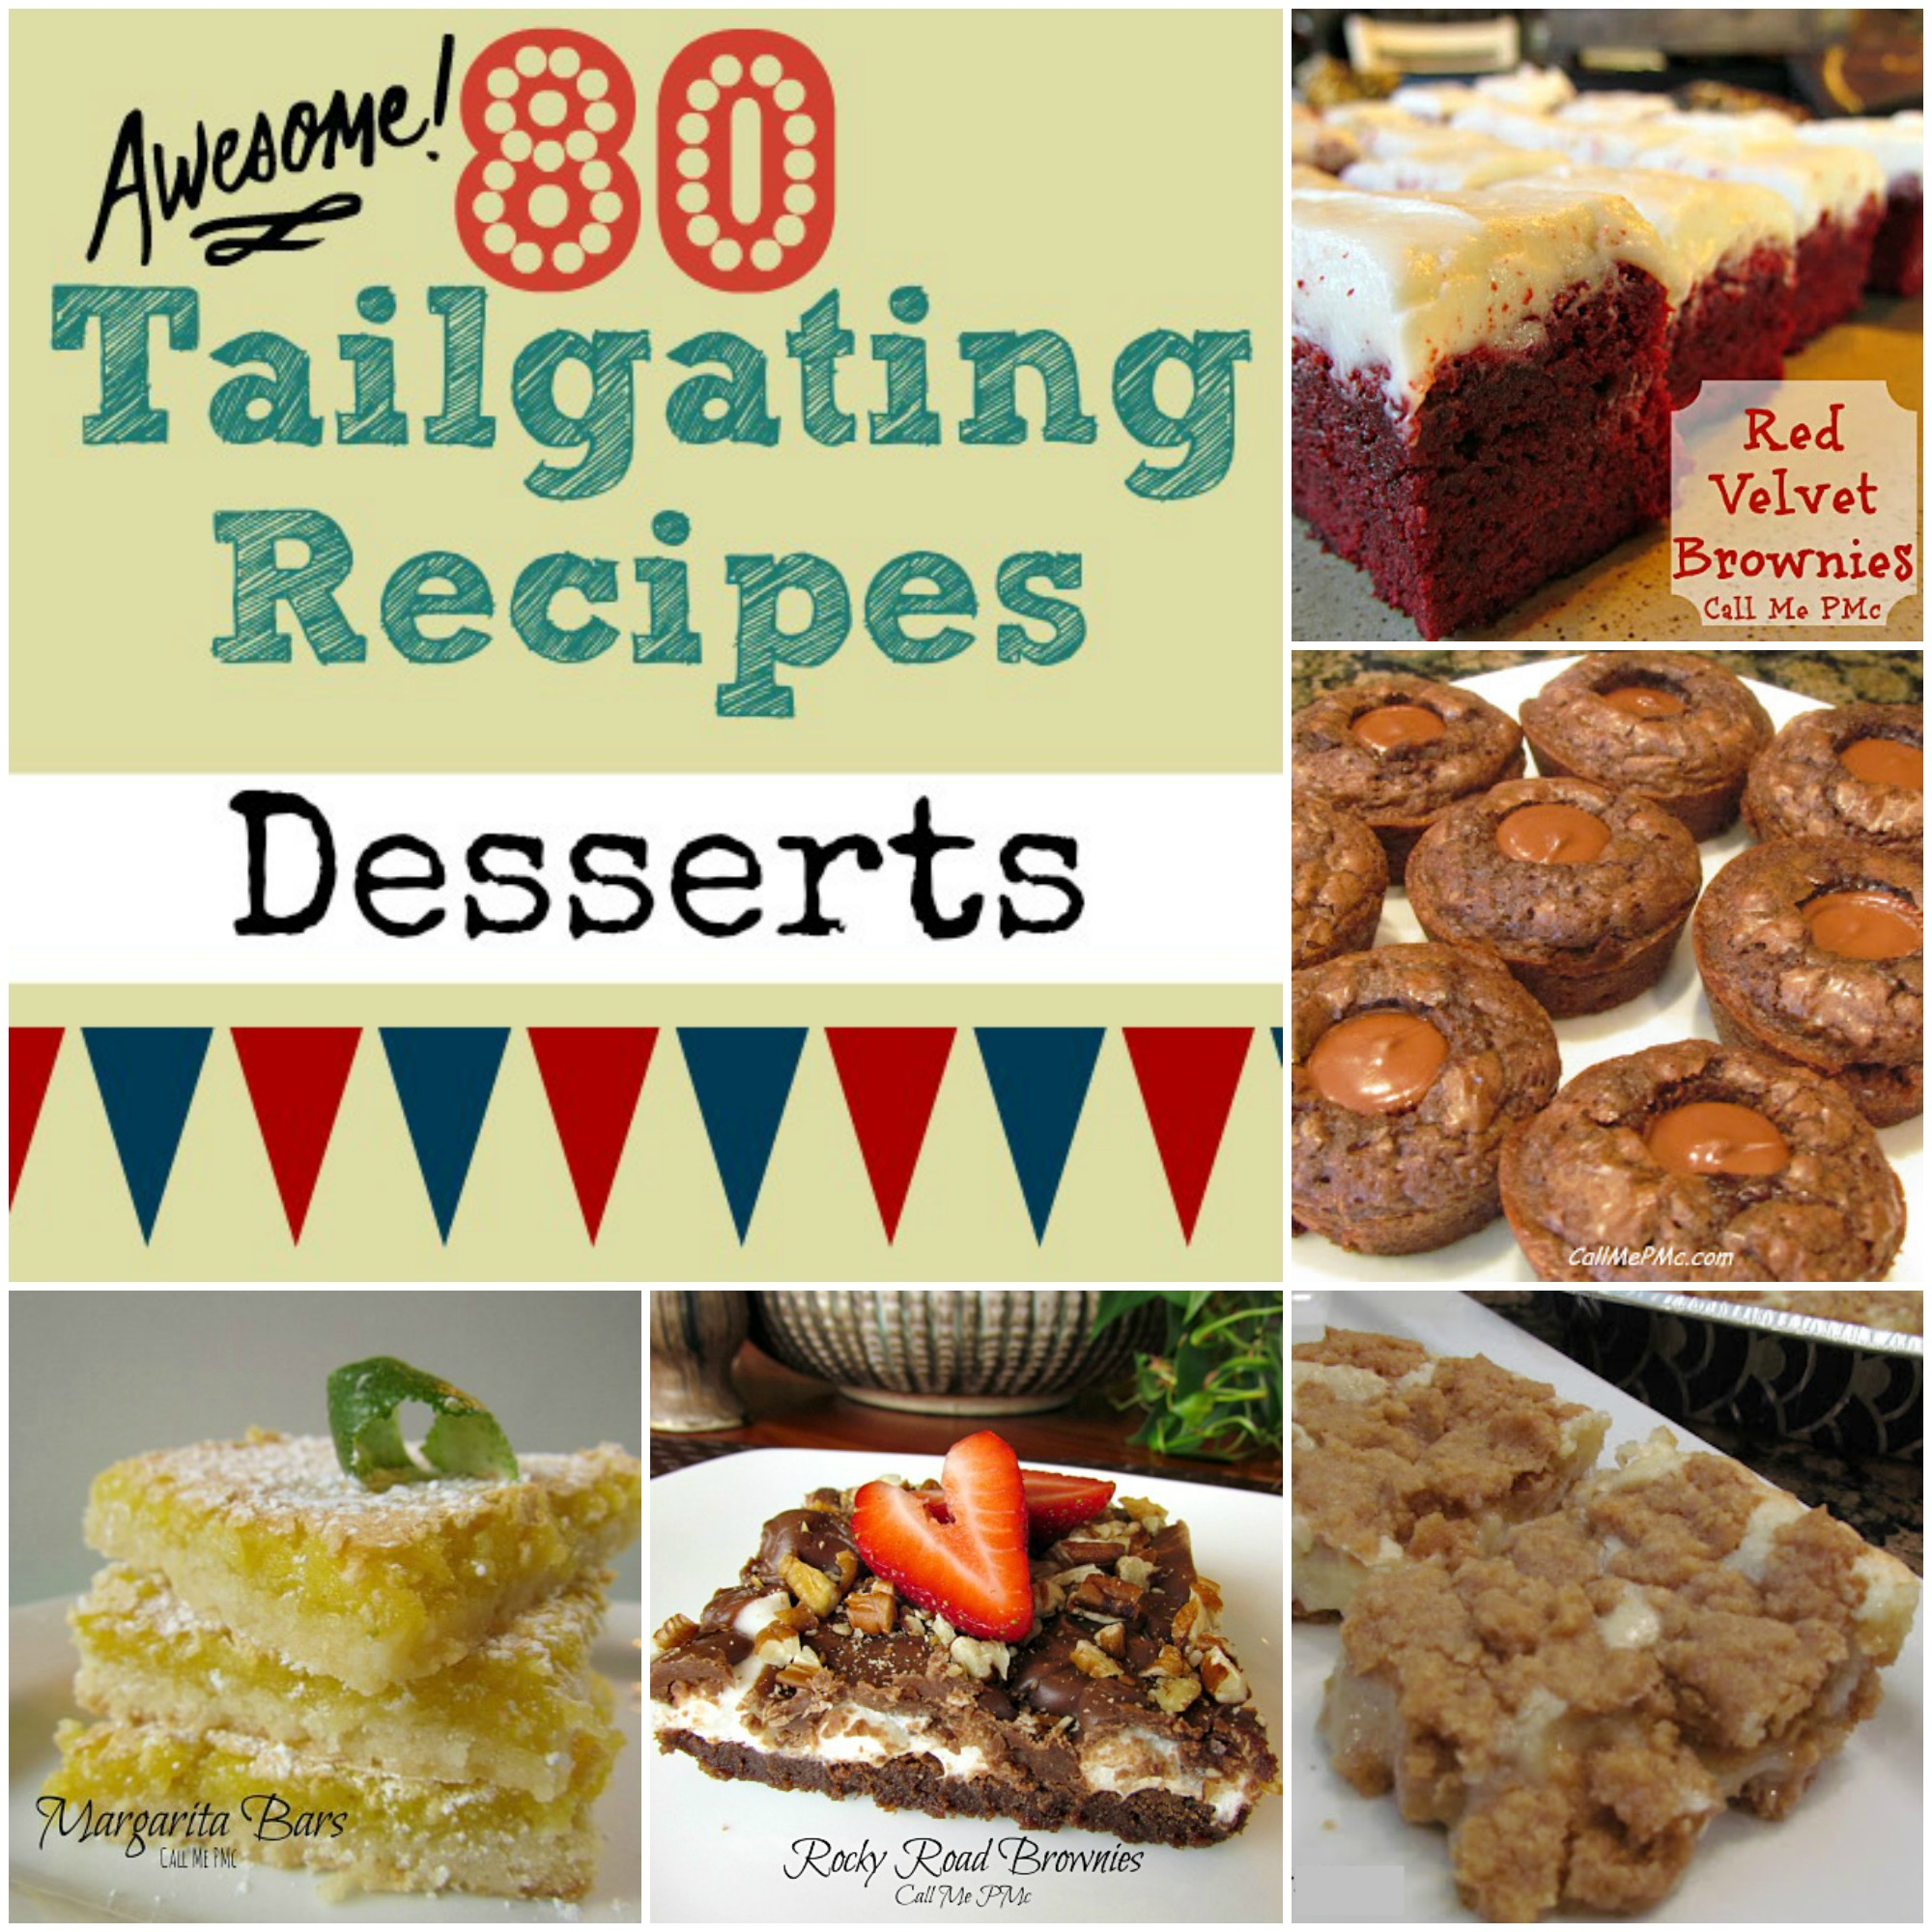 80 Tailgating Dessert Recipes #callmepmc httpwww.callmepmc.com